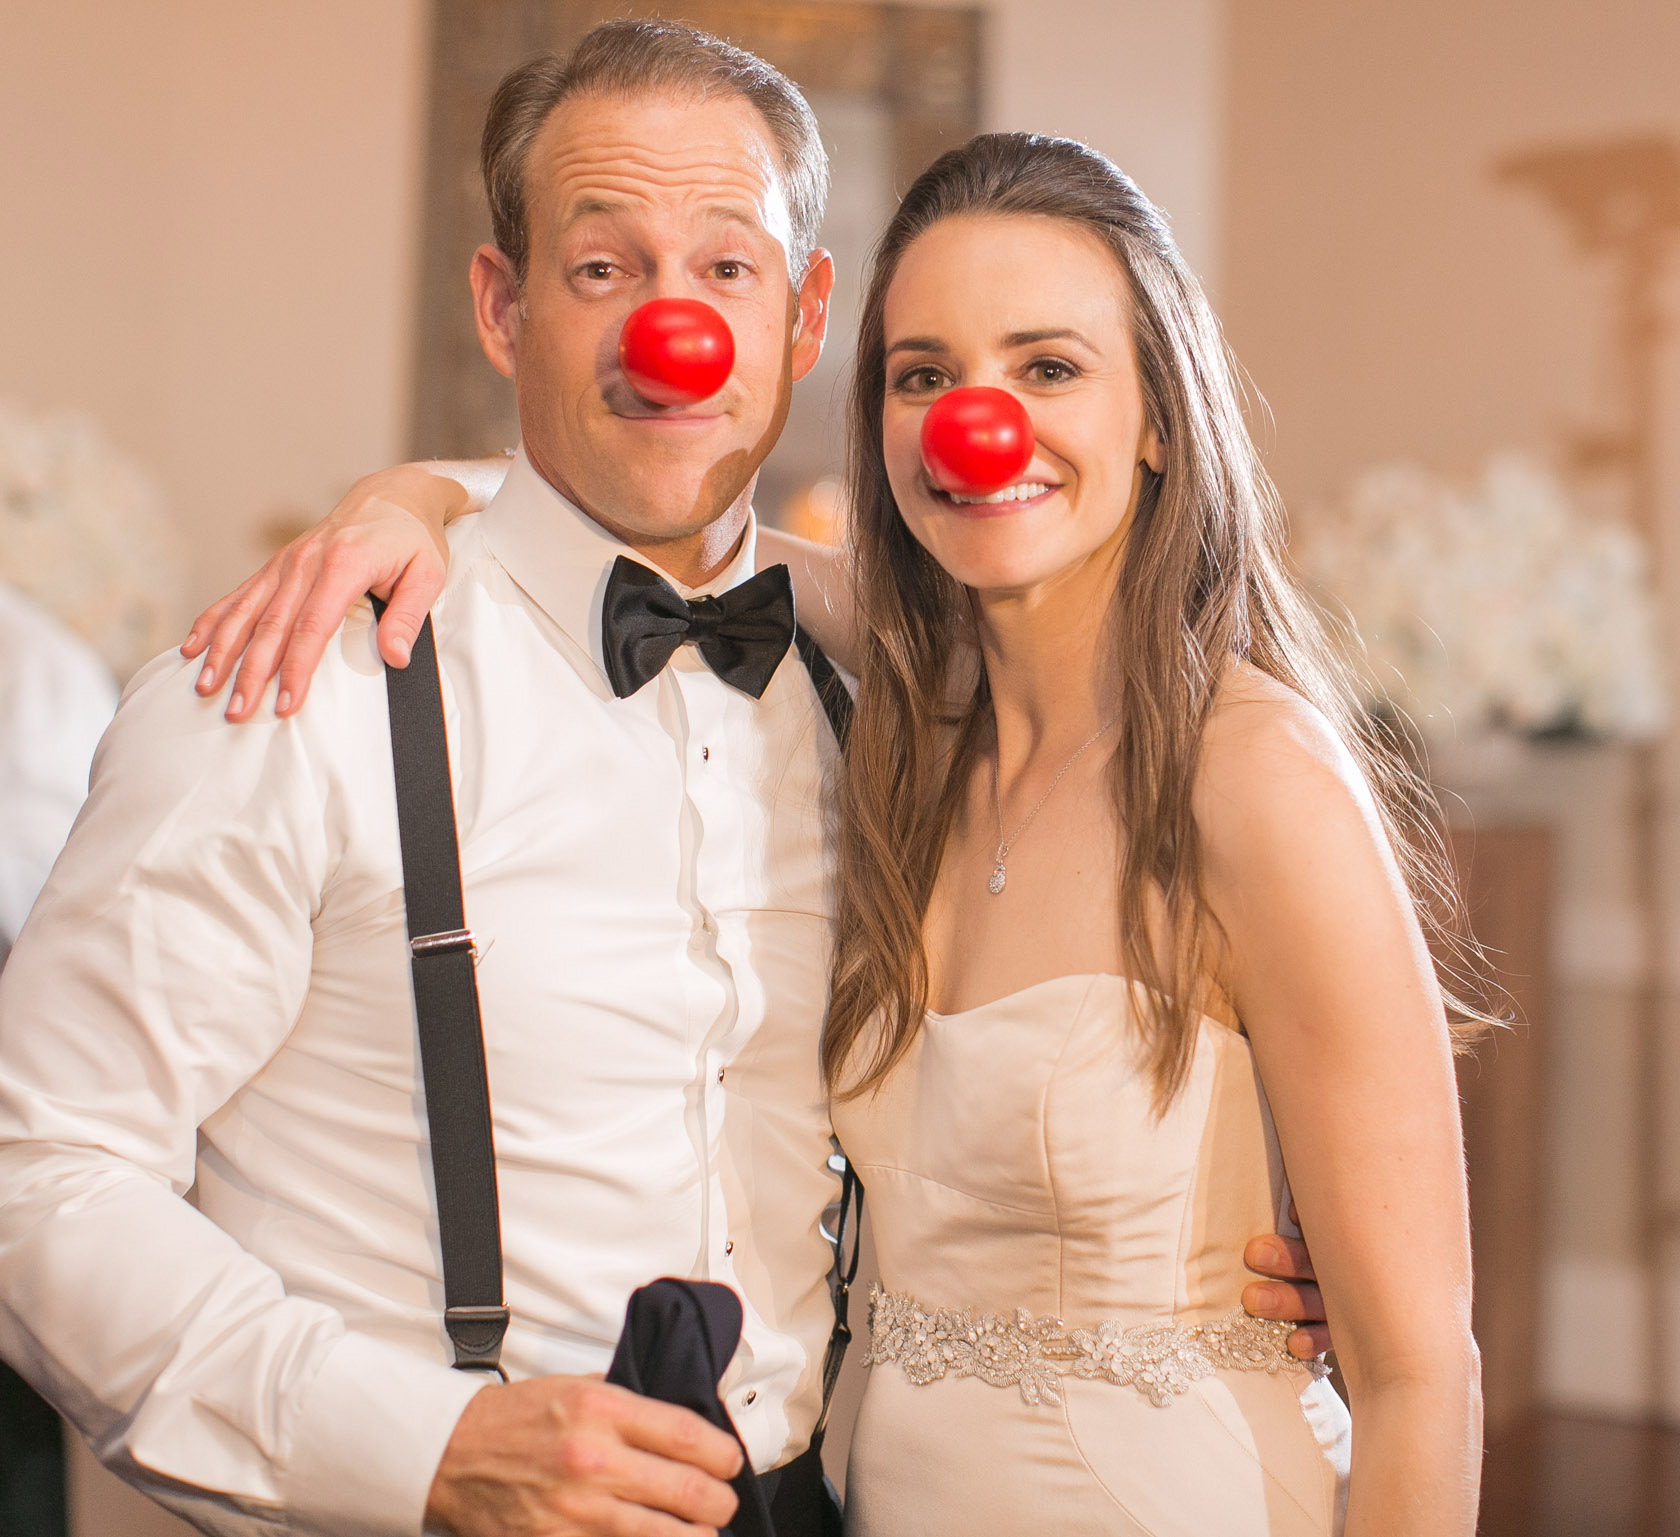 bride and groom clowning around with red clown noses